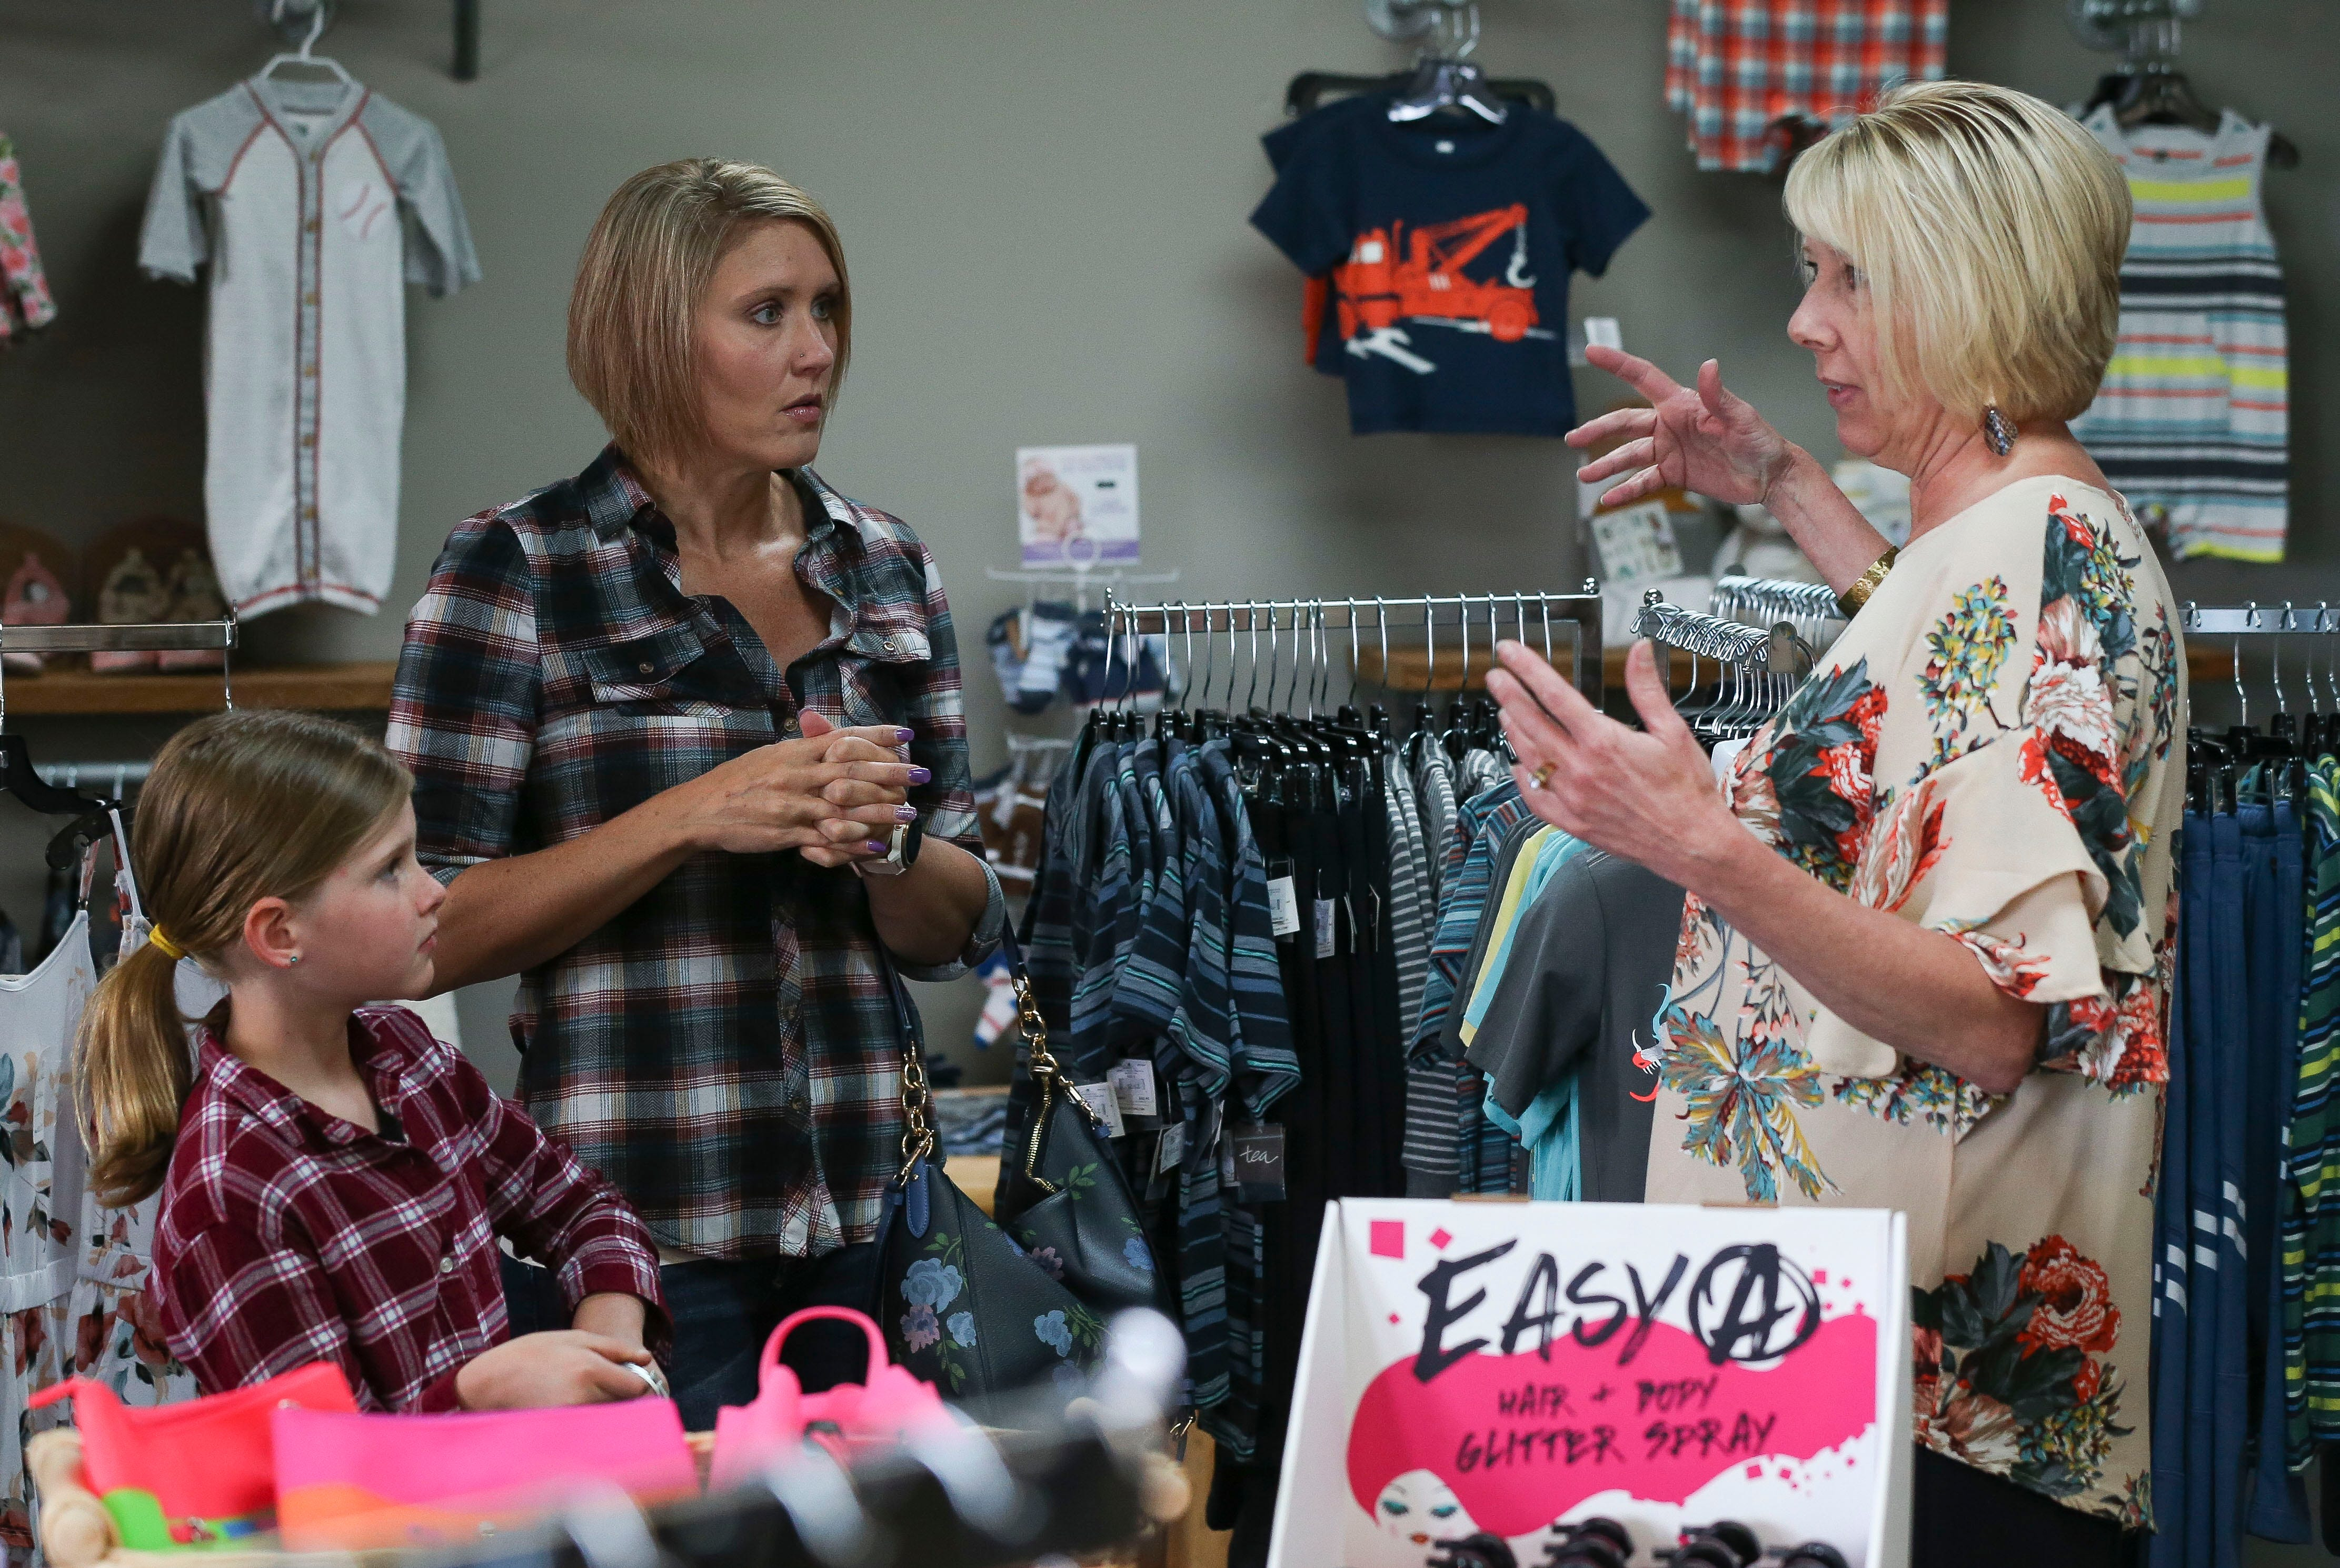 Jodi Parmeter, right, assists customers Camilla Spranger (right), 9, and her mother, Shelly Spranger, on Wednesday, June 12, 2019, at Rustic Redefined in Wisconsin Rapids, Wis. Parmeter opened Rustic Redefined in 2016 and takes pride in building strong relationships with her customers.